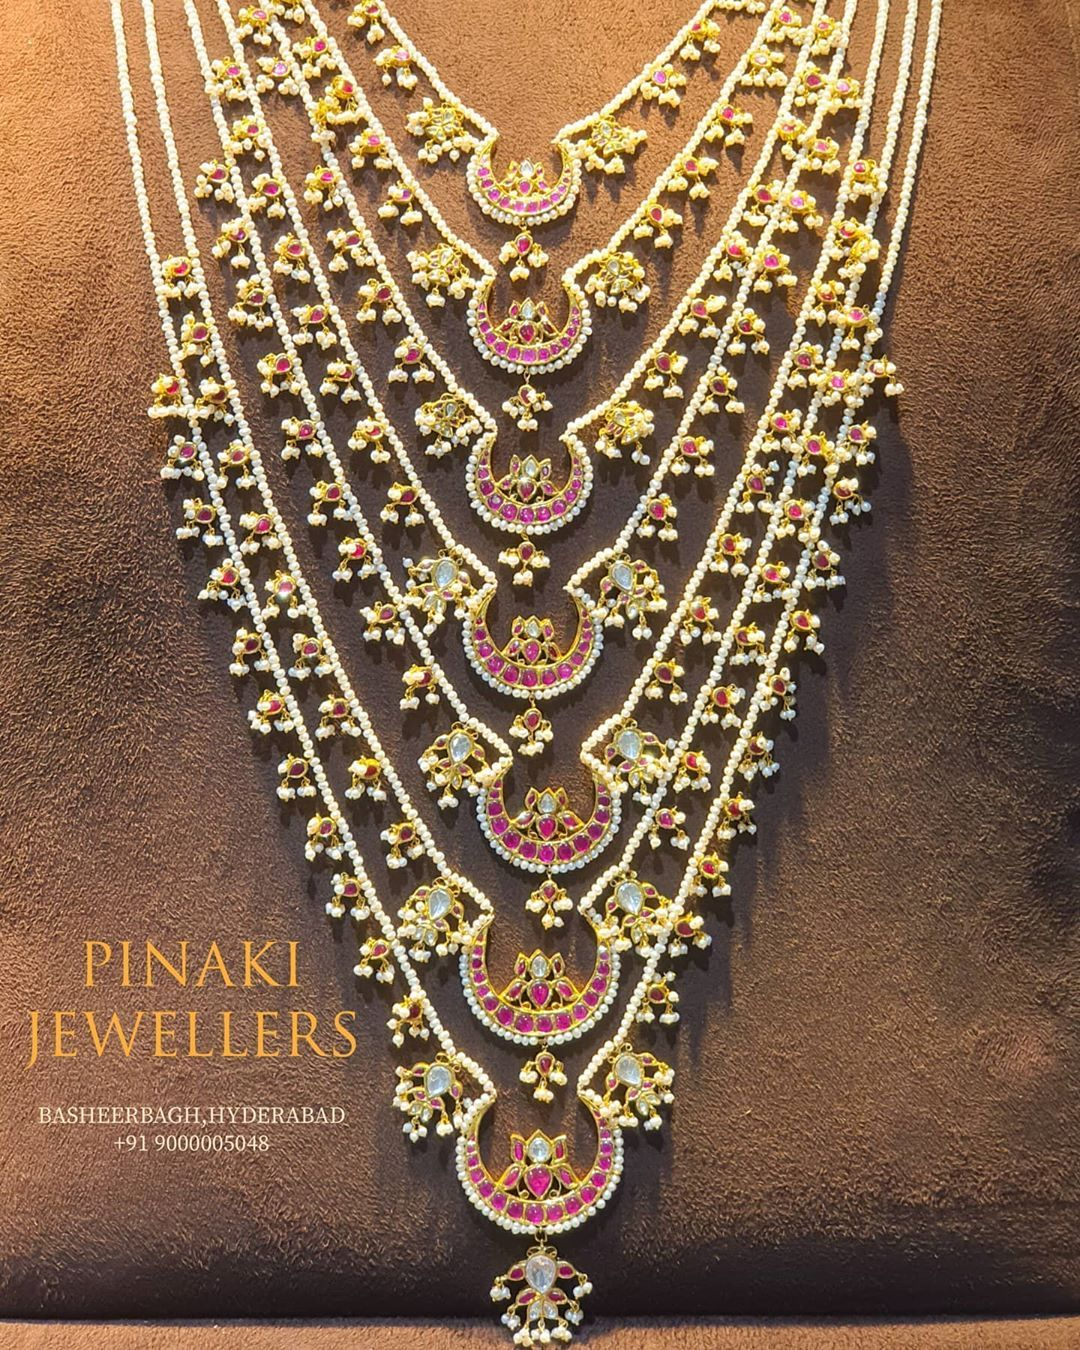 40 Likes 8 Comments Pinaki Jewellers Pinakijewellers On Instagram Old Is Gold This In 2020 Gold Jewelry Fashion Antique Jewelry Indian Antique Bridal Jewelry